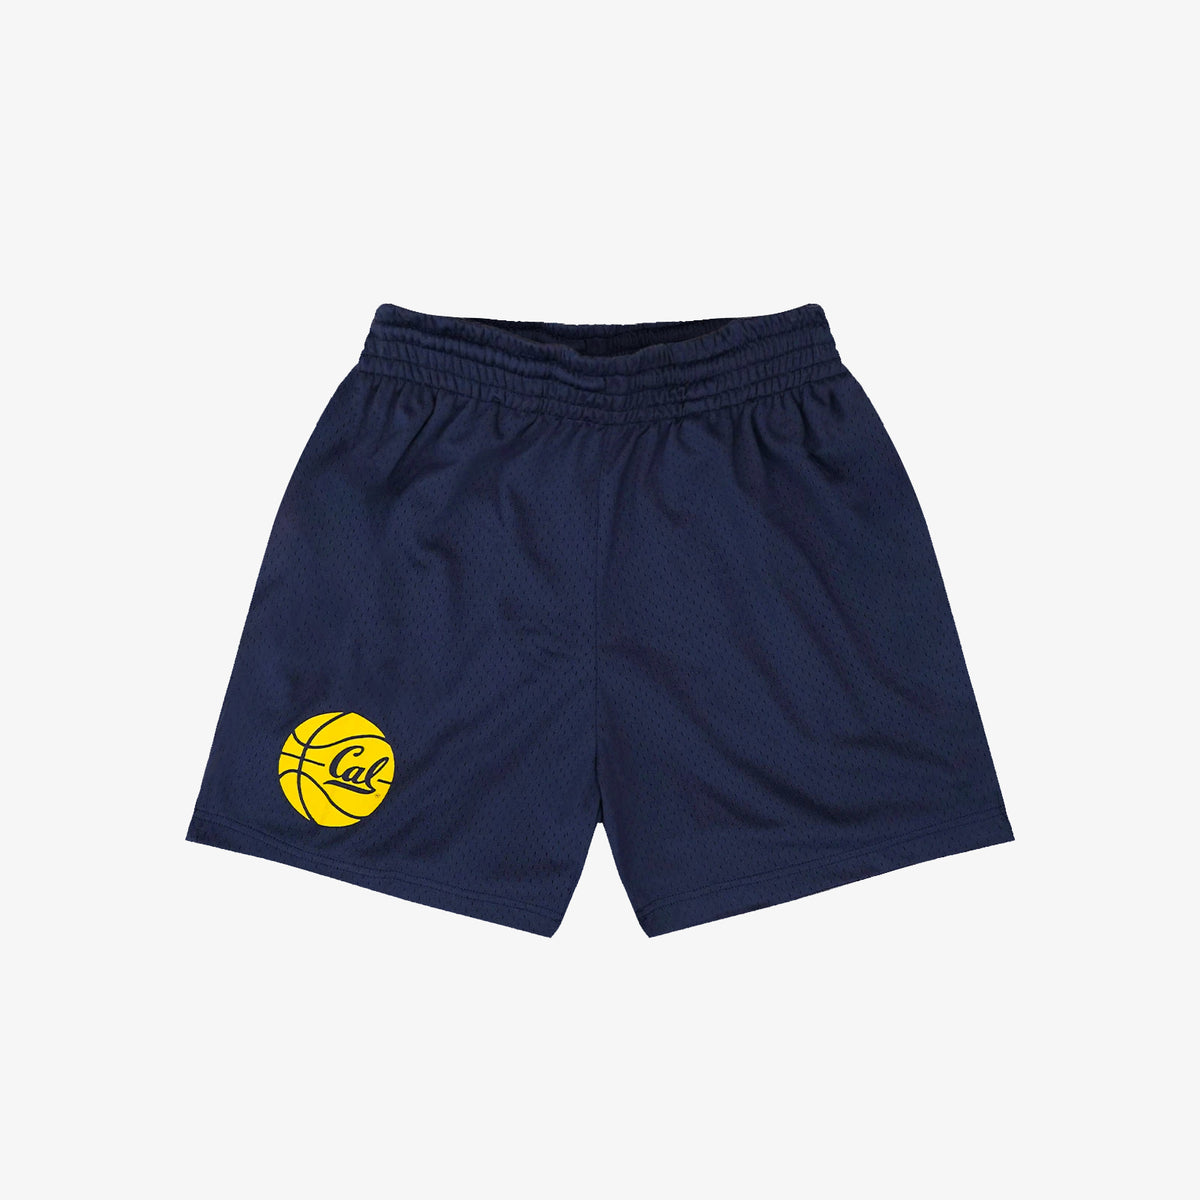 Cal Mesh Retro College Practice Shorts - Navy